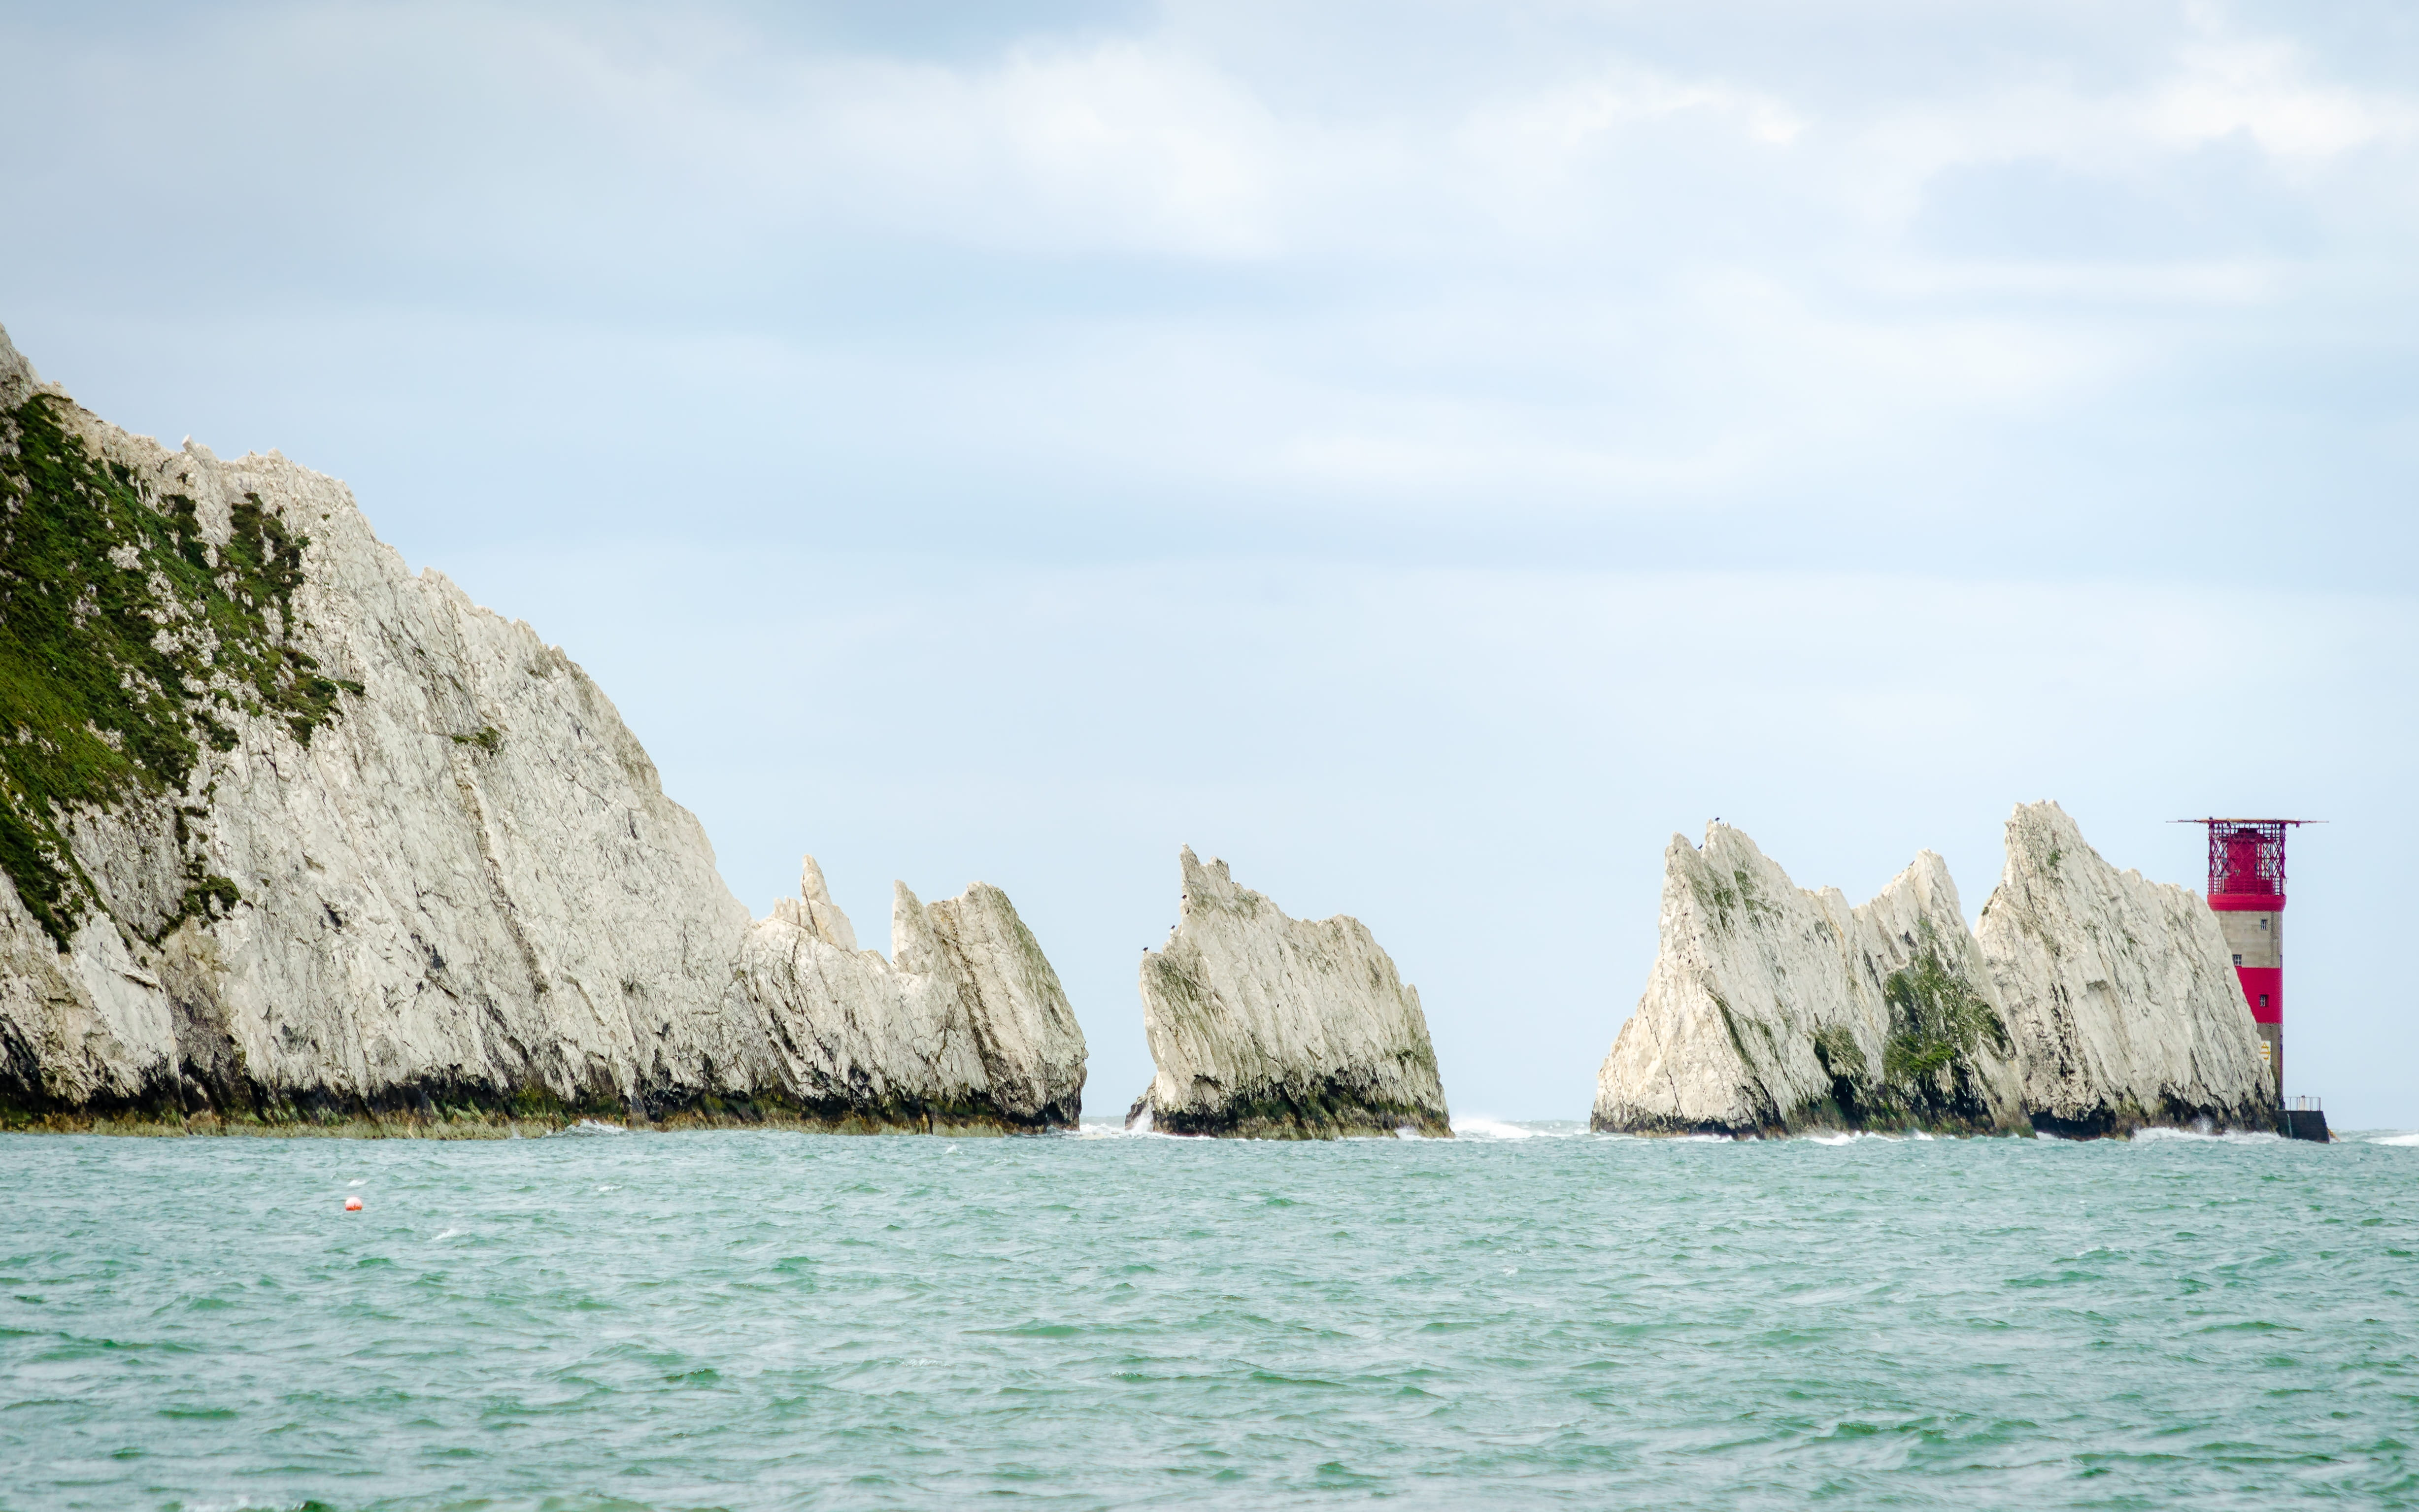 Isle of Wight Needles - Boundless  by CSMA - Wightlink